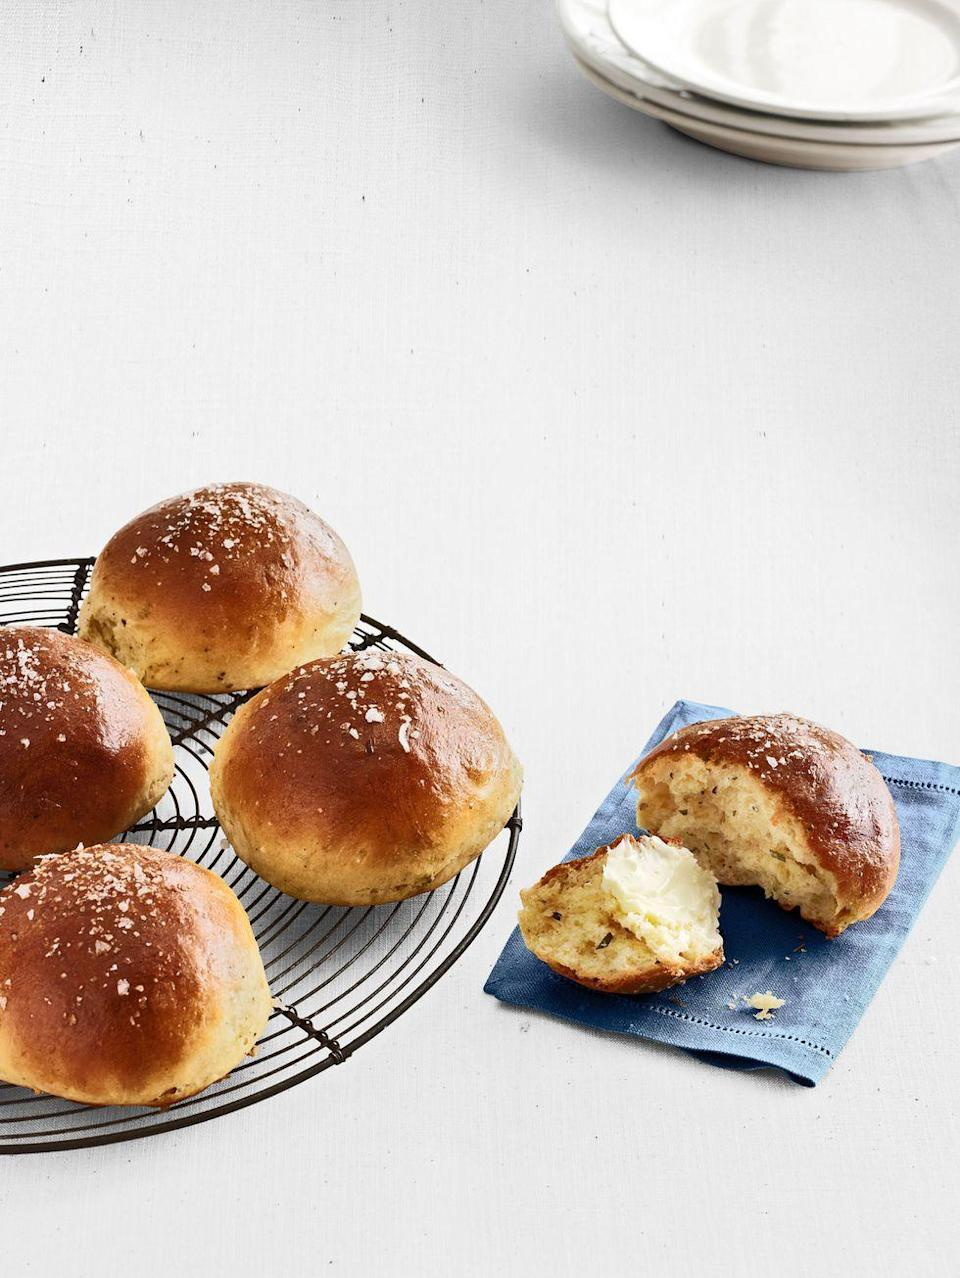 "<p>The addition of fresh herbs makes these rich, buttery brioche rolls special. Studded with rosemary and black pepper, and topped with coarse salt, these rolls are fragrant and flavorful.</p><p><strong><a href=""https://www.countryliving.com/food-drinks/recipes/a4961/rosemary-brioche-rolls-recipe-clx0414/"" rel=""nofollow noopener"" target=""_blank"" data-ylk=""slk:Get the recipe"" class=""link rapid-noclick-resp"">Get the recipe</a>.</strong></p>"